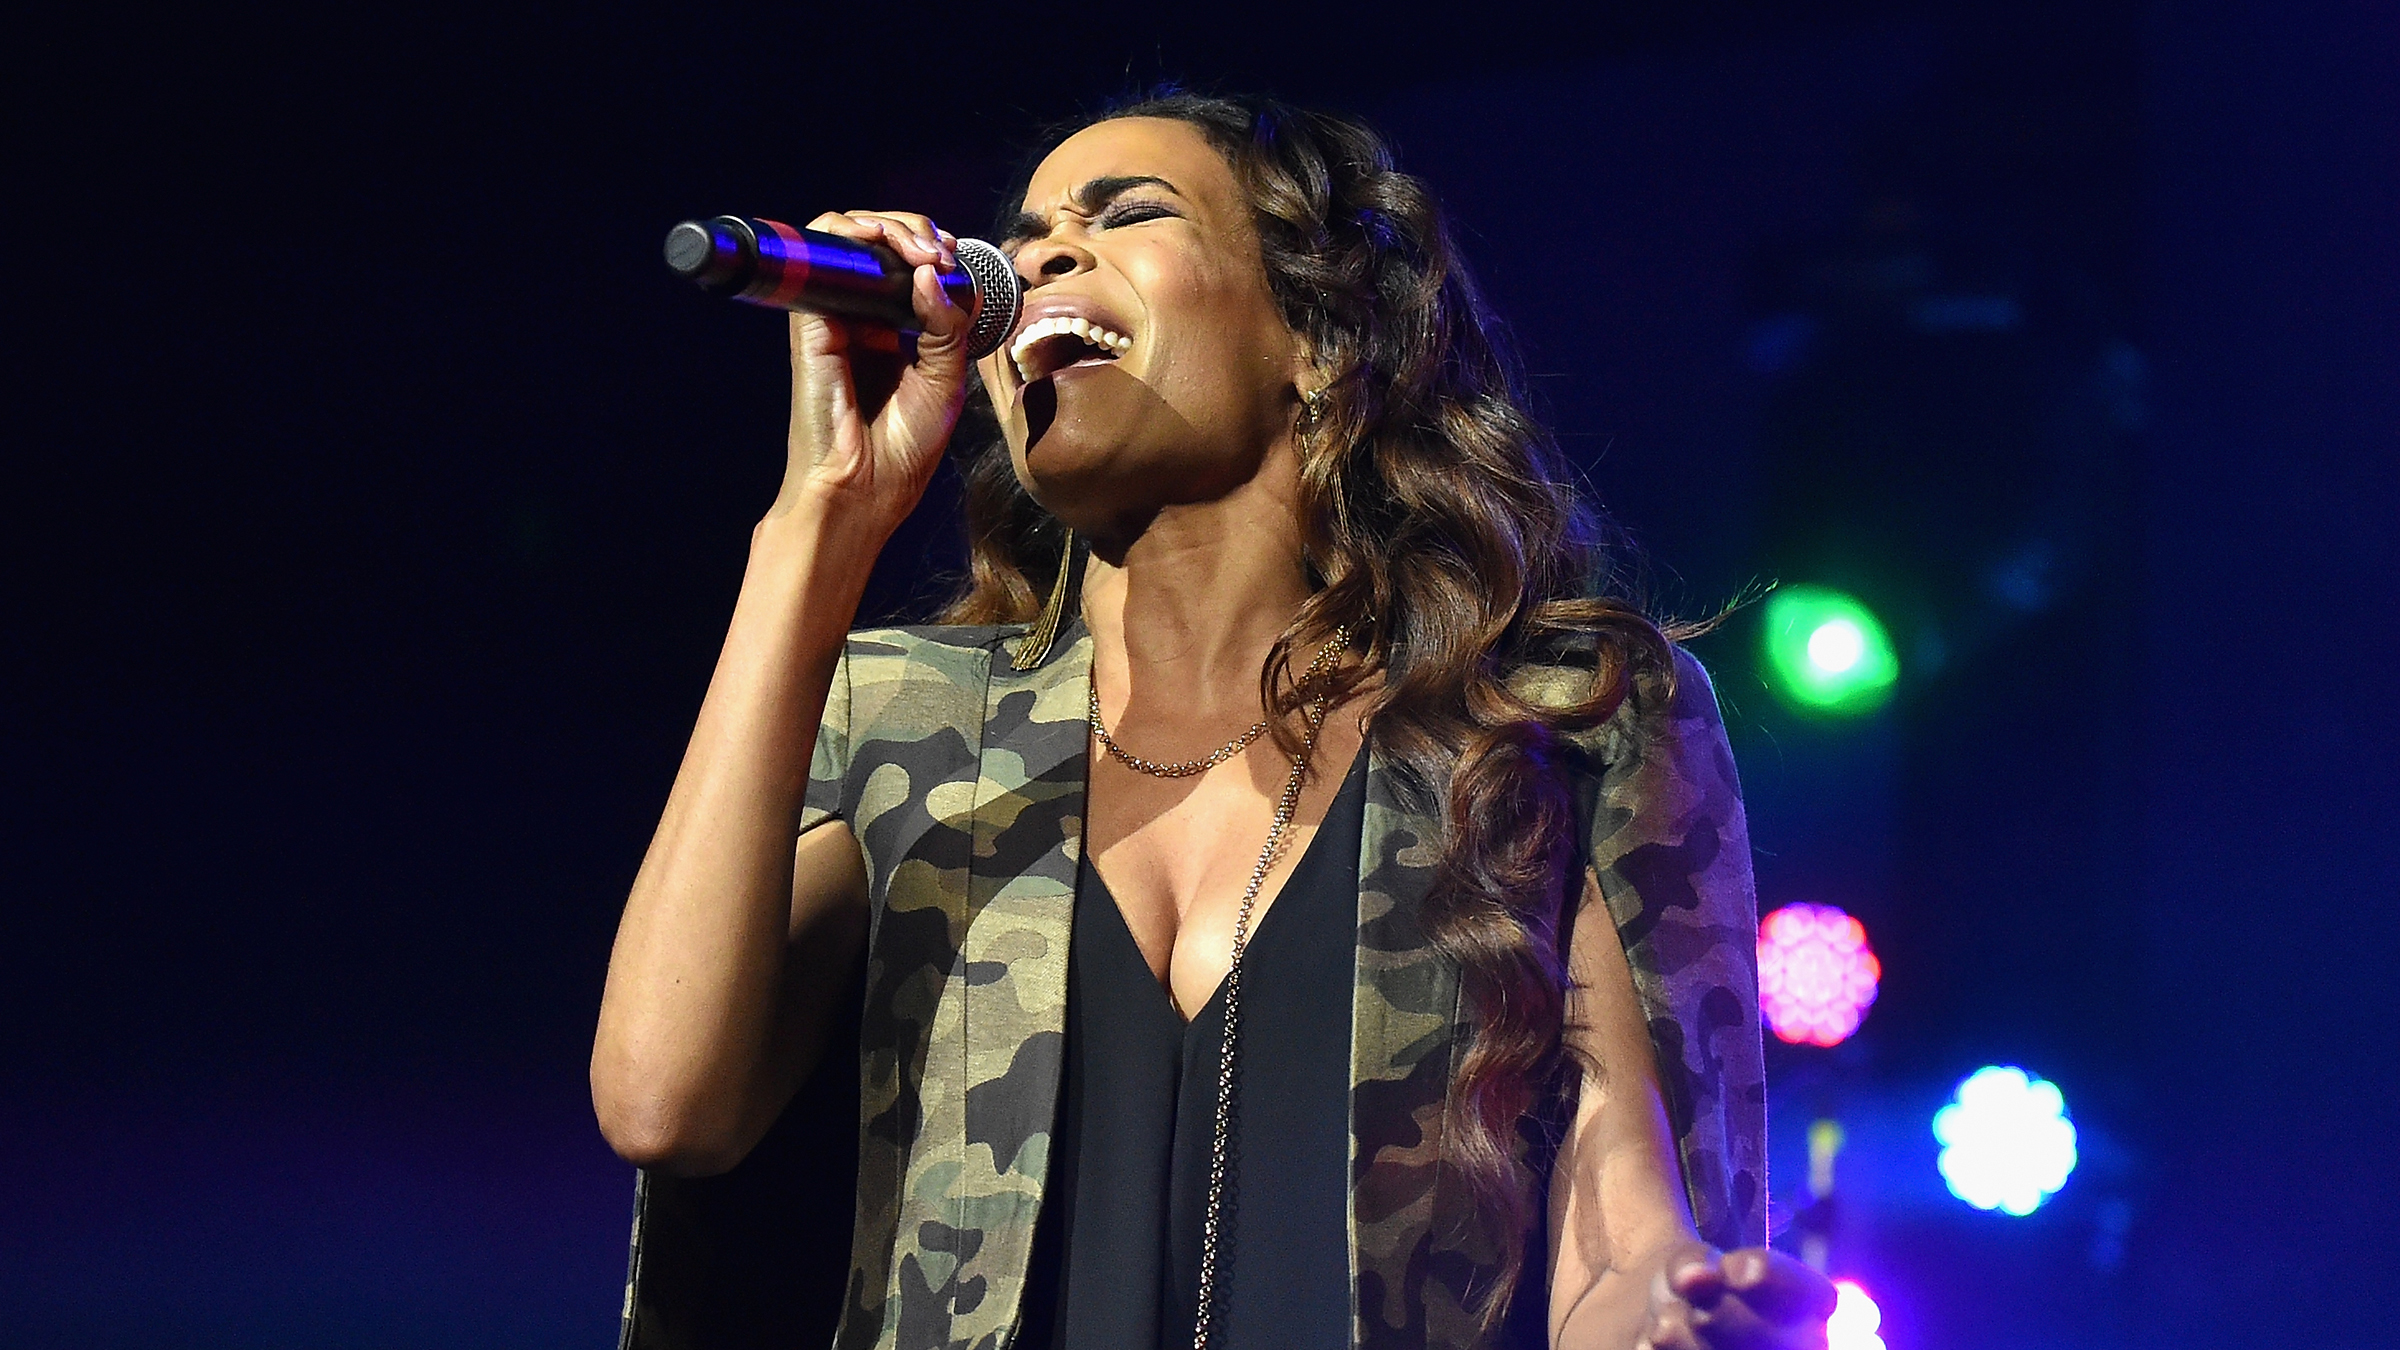 Singer Michelle Williams performs onstage at the 2016 ESSENCE Festival Presented By Coca-Cola at Ernest N. Morial Convention Center on July 1, 2016 in New Orleans, Louisiana. (Photo by Paras Griffin/Getty Images for 2016 Essence Festival)